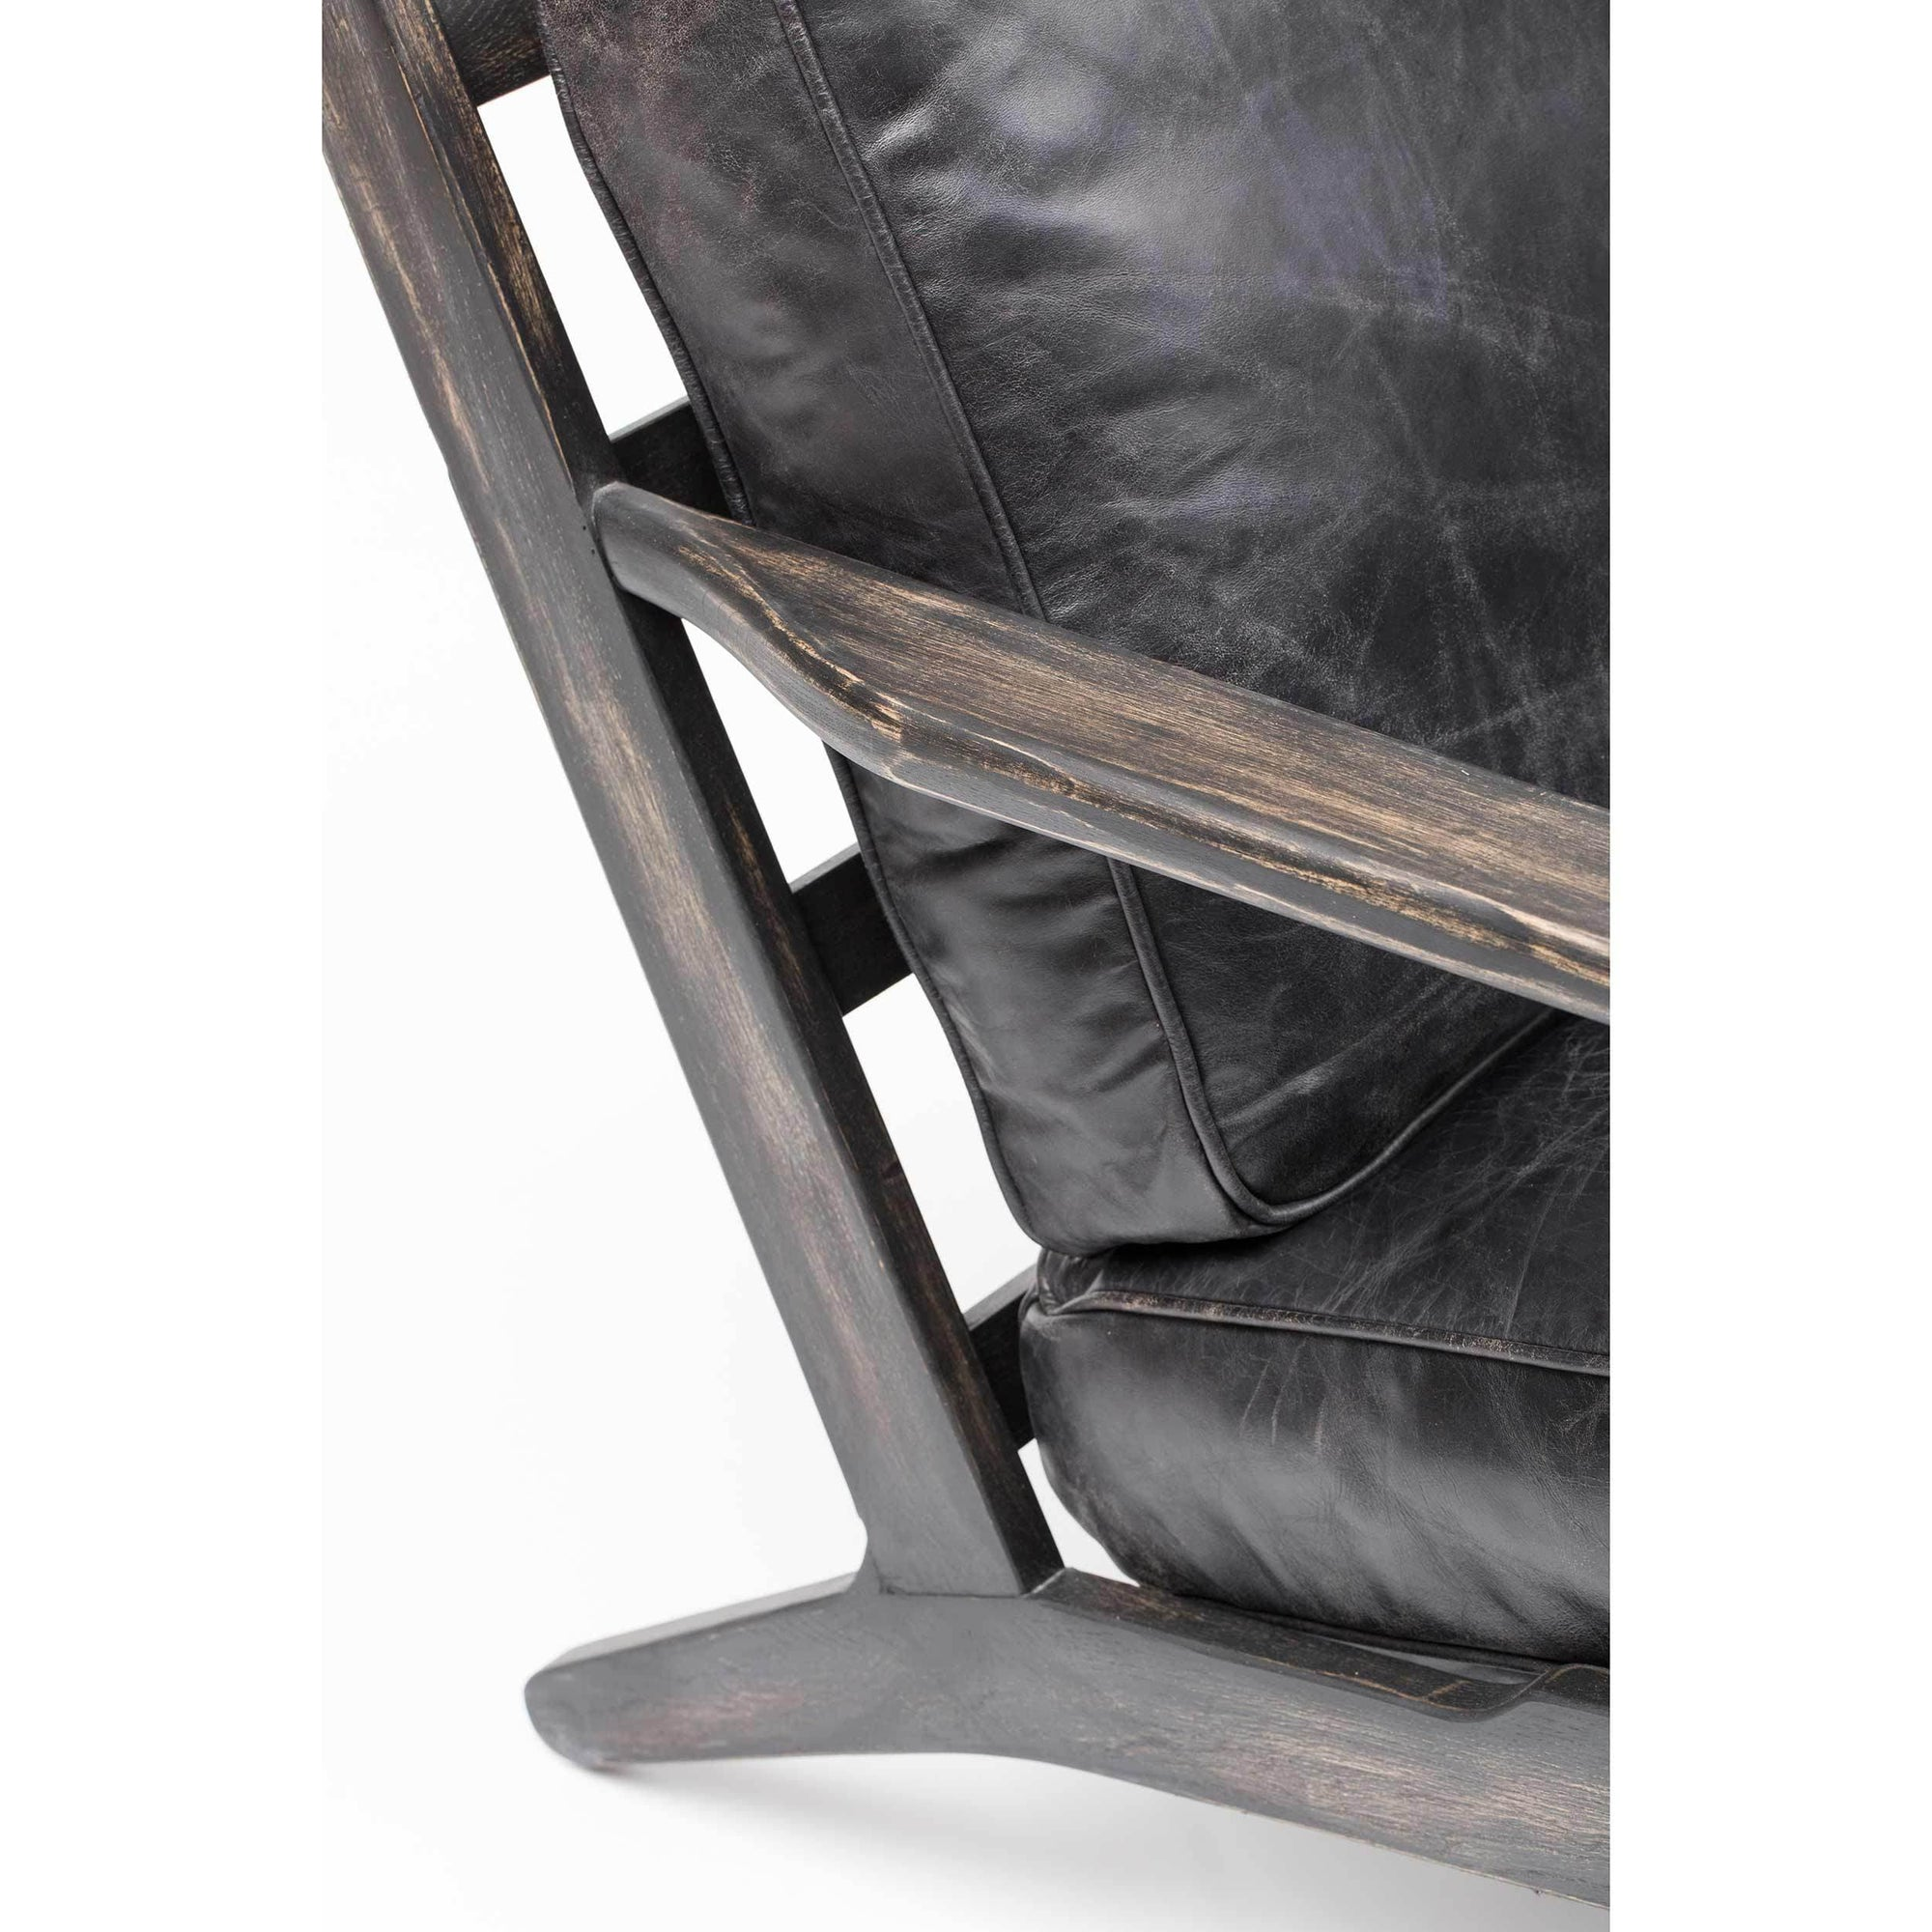 Brooks Leather Lounge Chair Ebony High Fashion Home